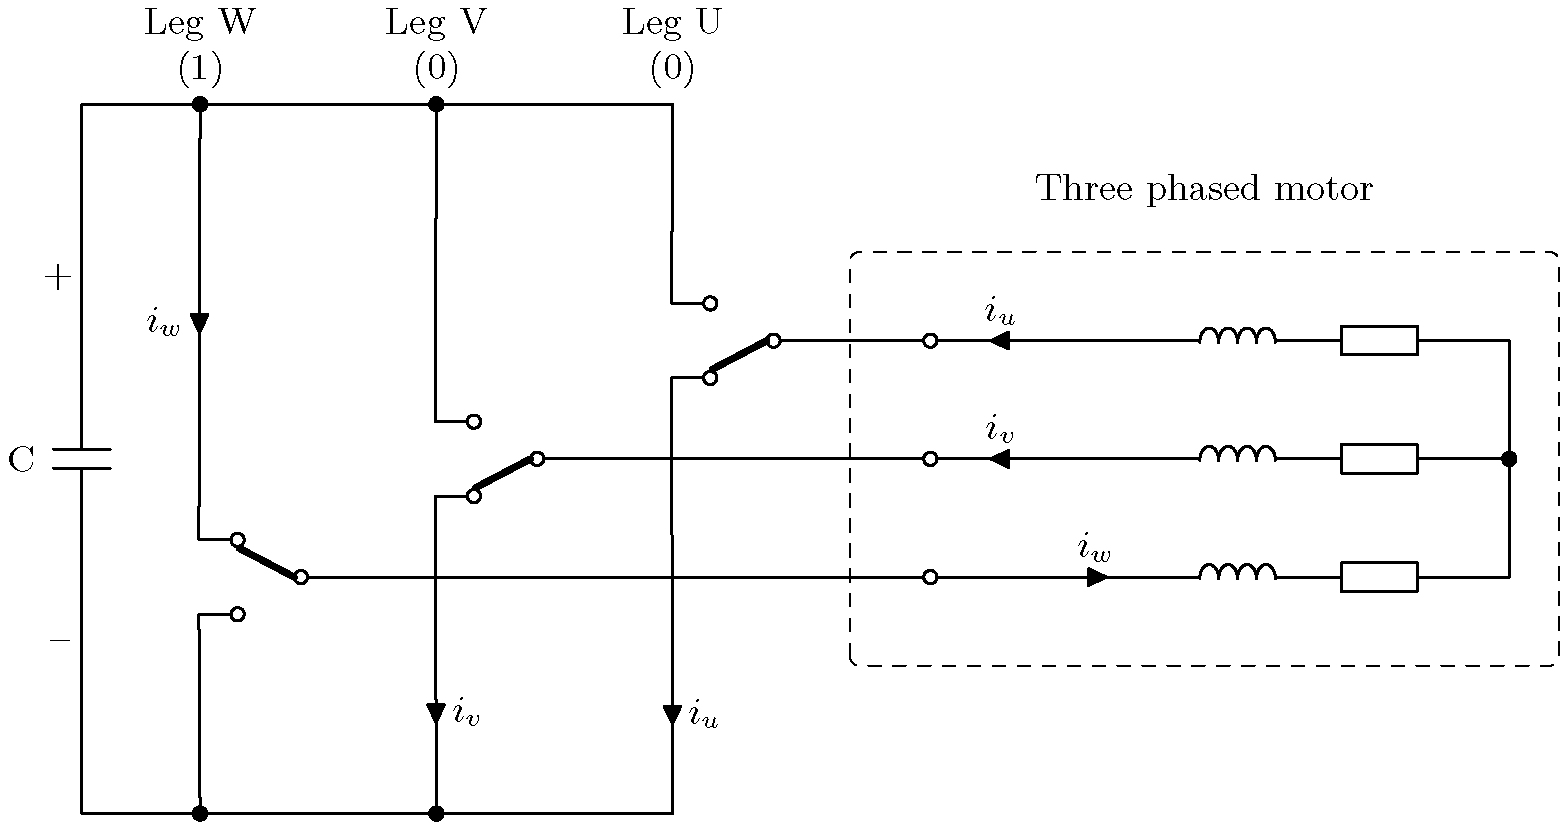 The simplified version of a two level inverter. The DC-link is now assumed constant so that the diode rectifier is omitted. Further, it is assumed that each inverter leg has one of two transistors closed at any given time. In this example, Leg W has the upper transistor closed while Leg V and U has the lower transistor closed. The arrows indicate current direction.